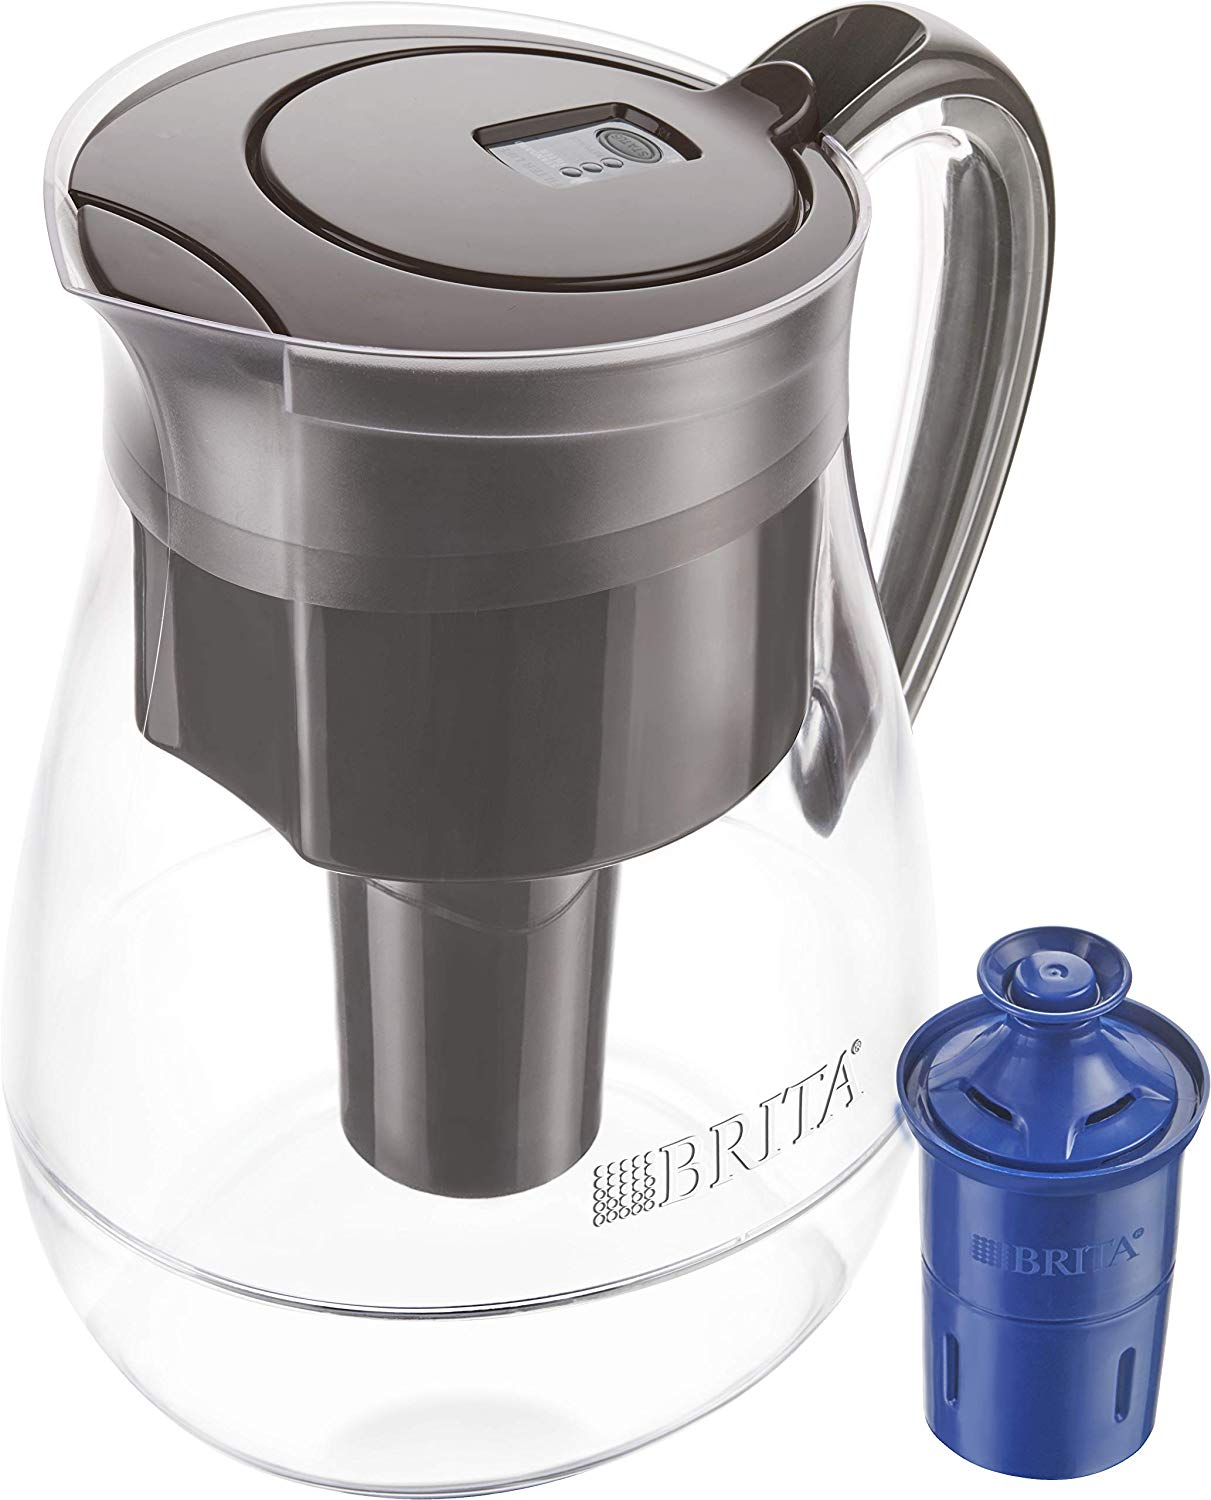 Today Only: Save 30% On Brita Water Pitchers At Amazon